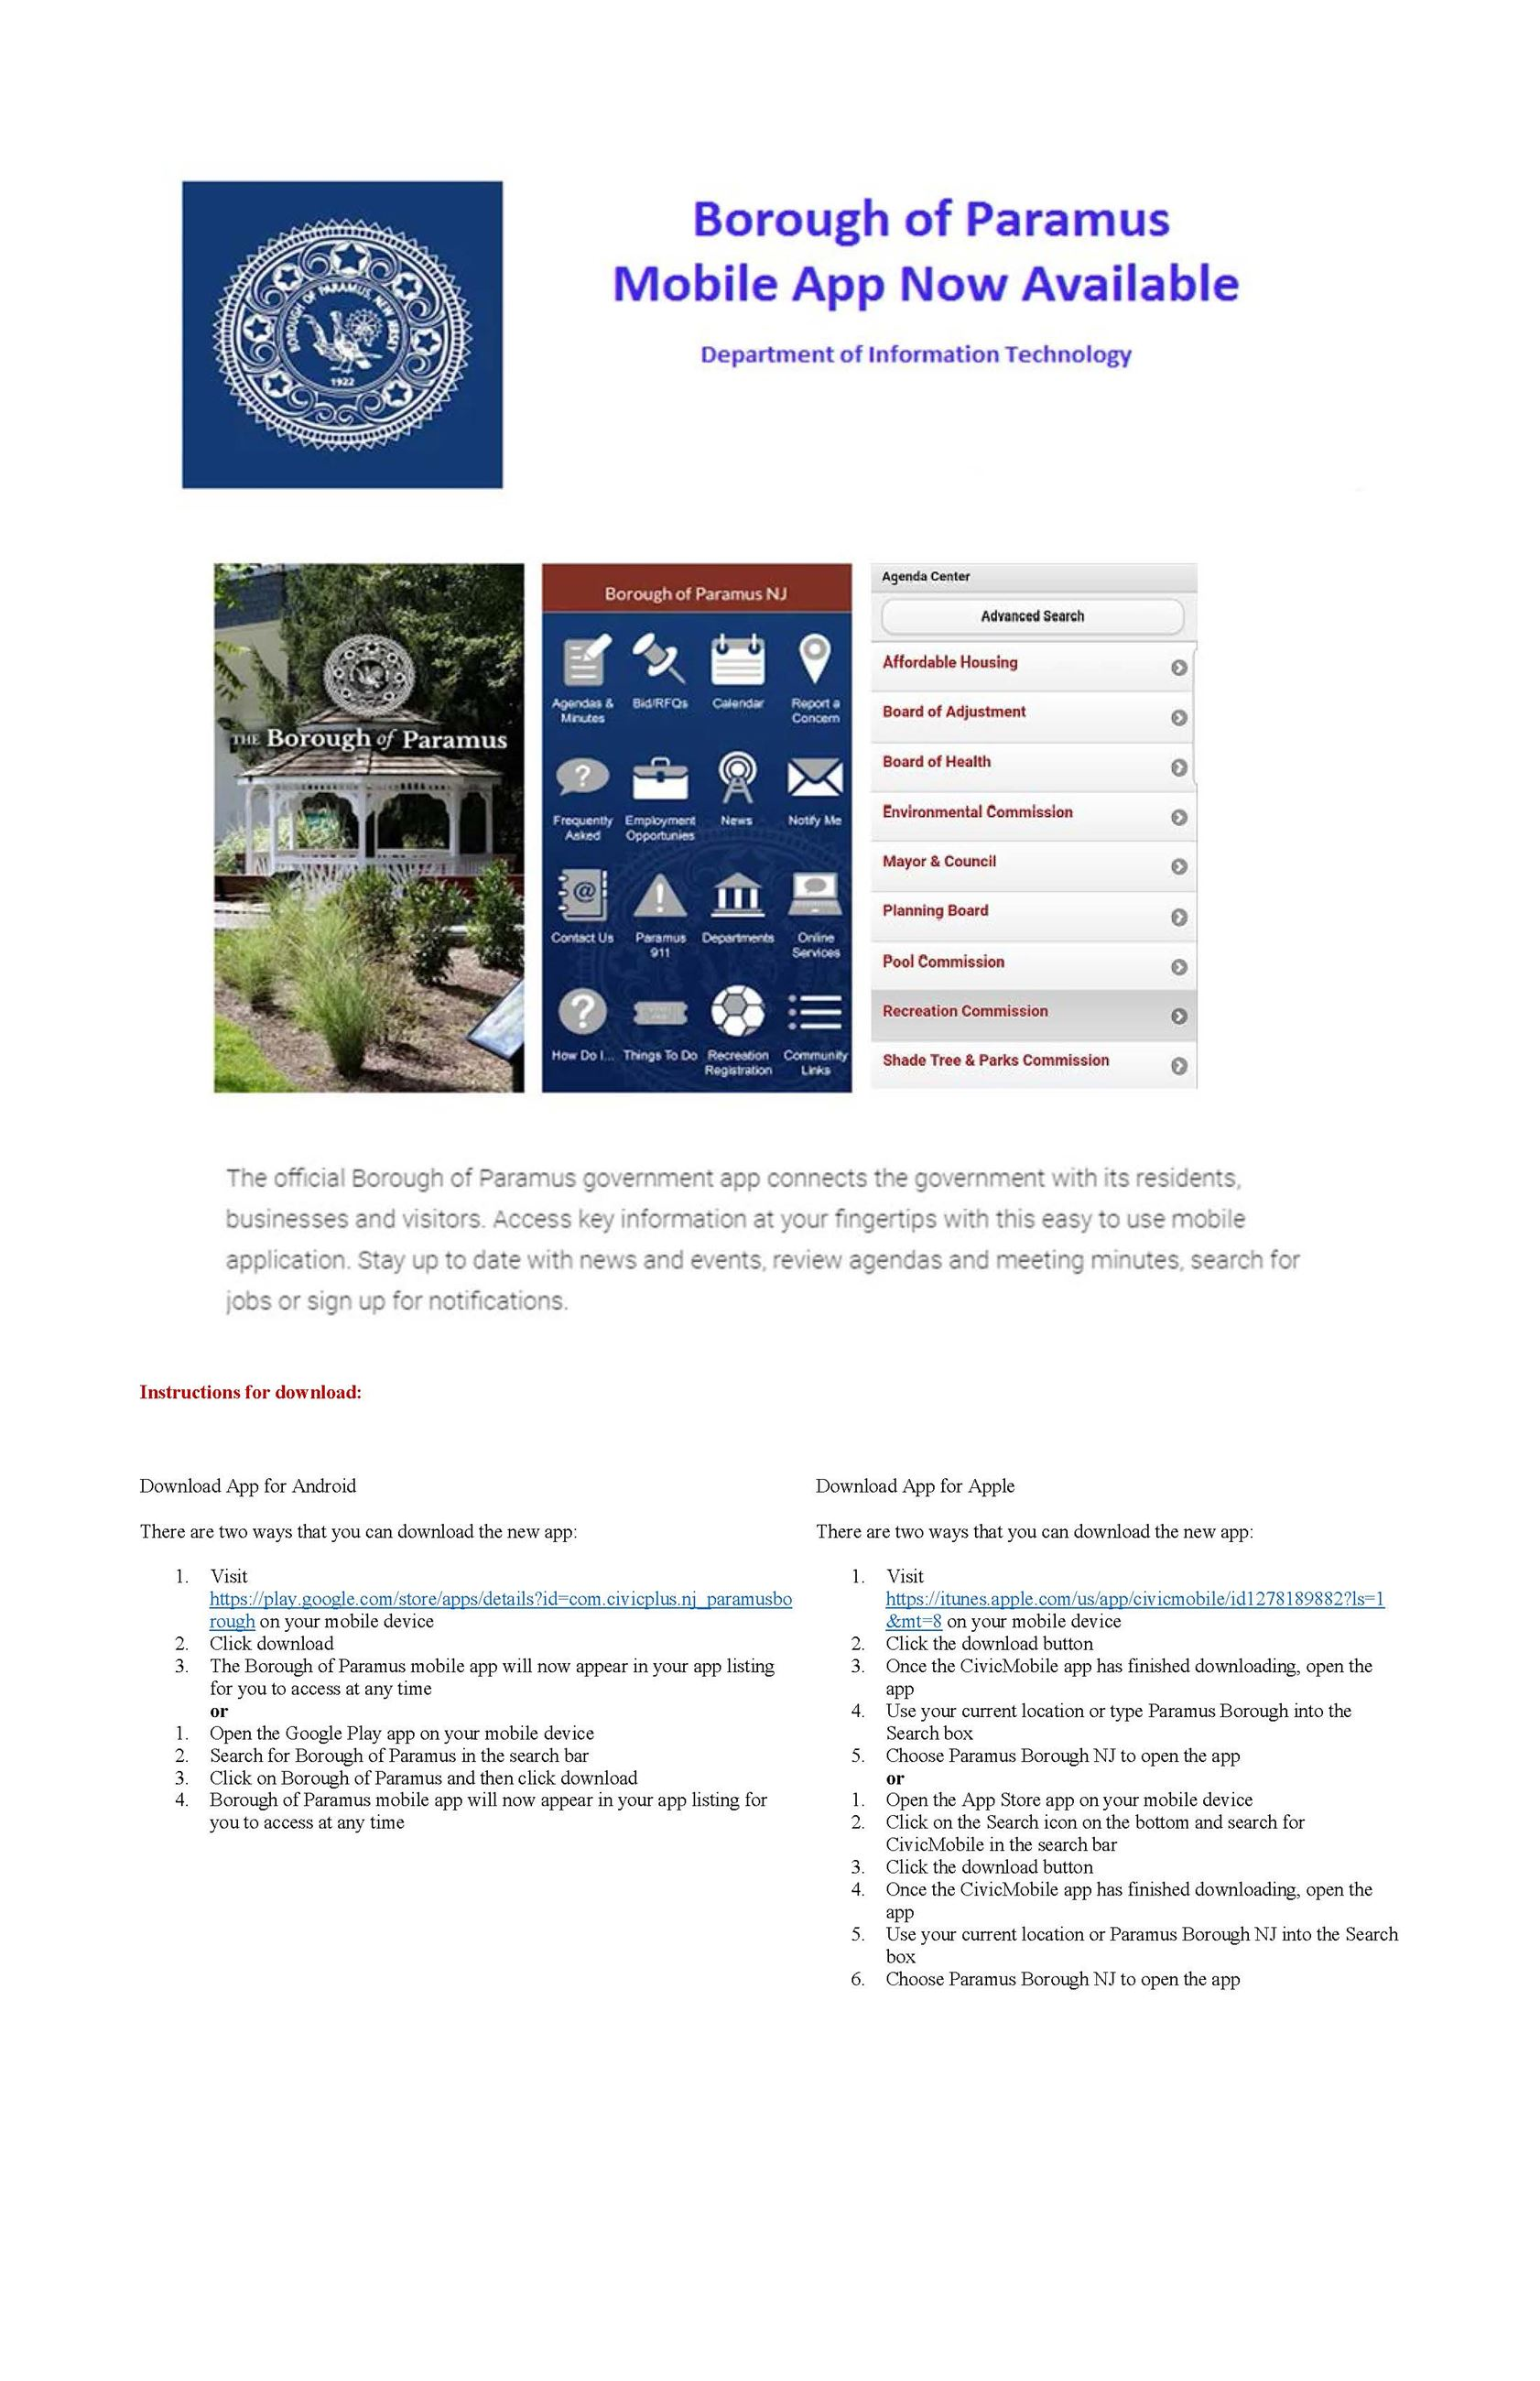 Borough of Paramus Mobile App